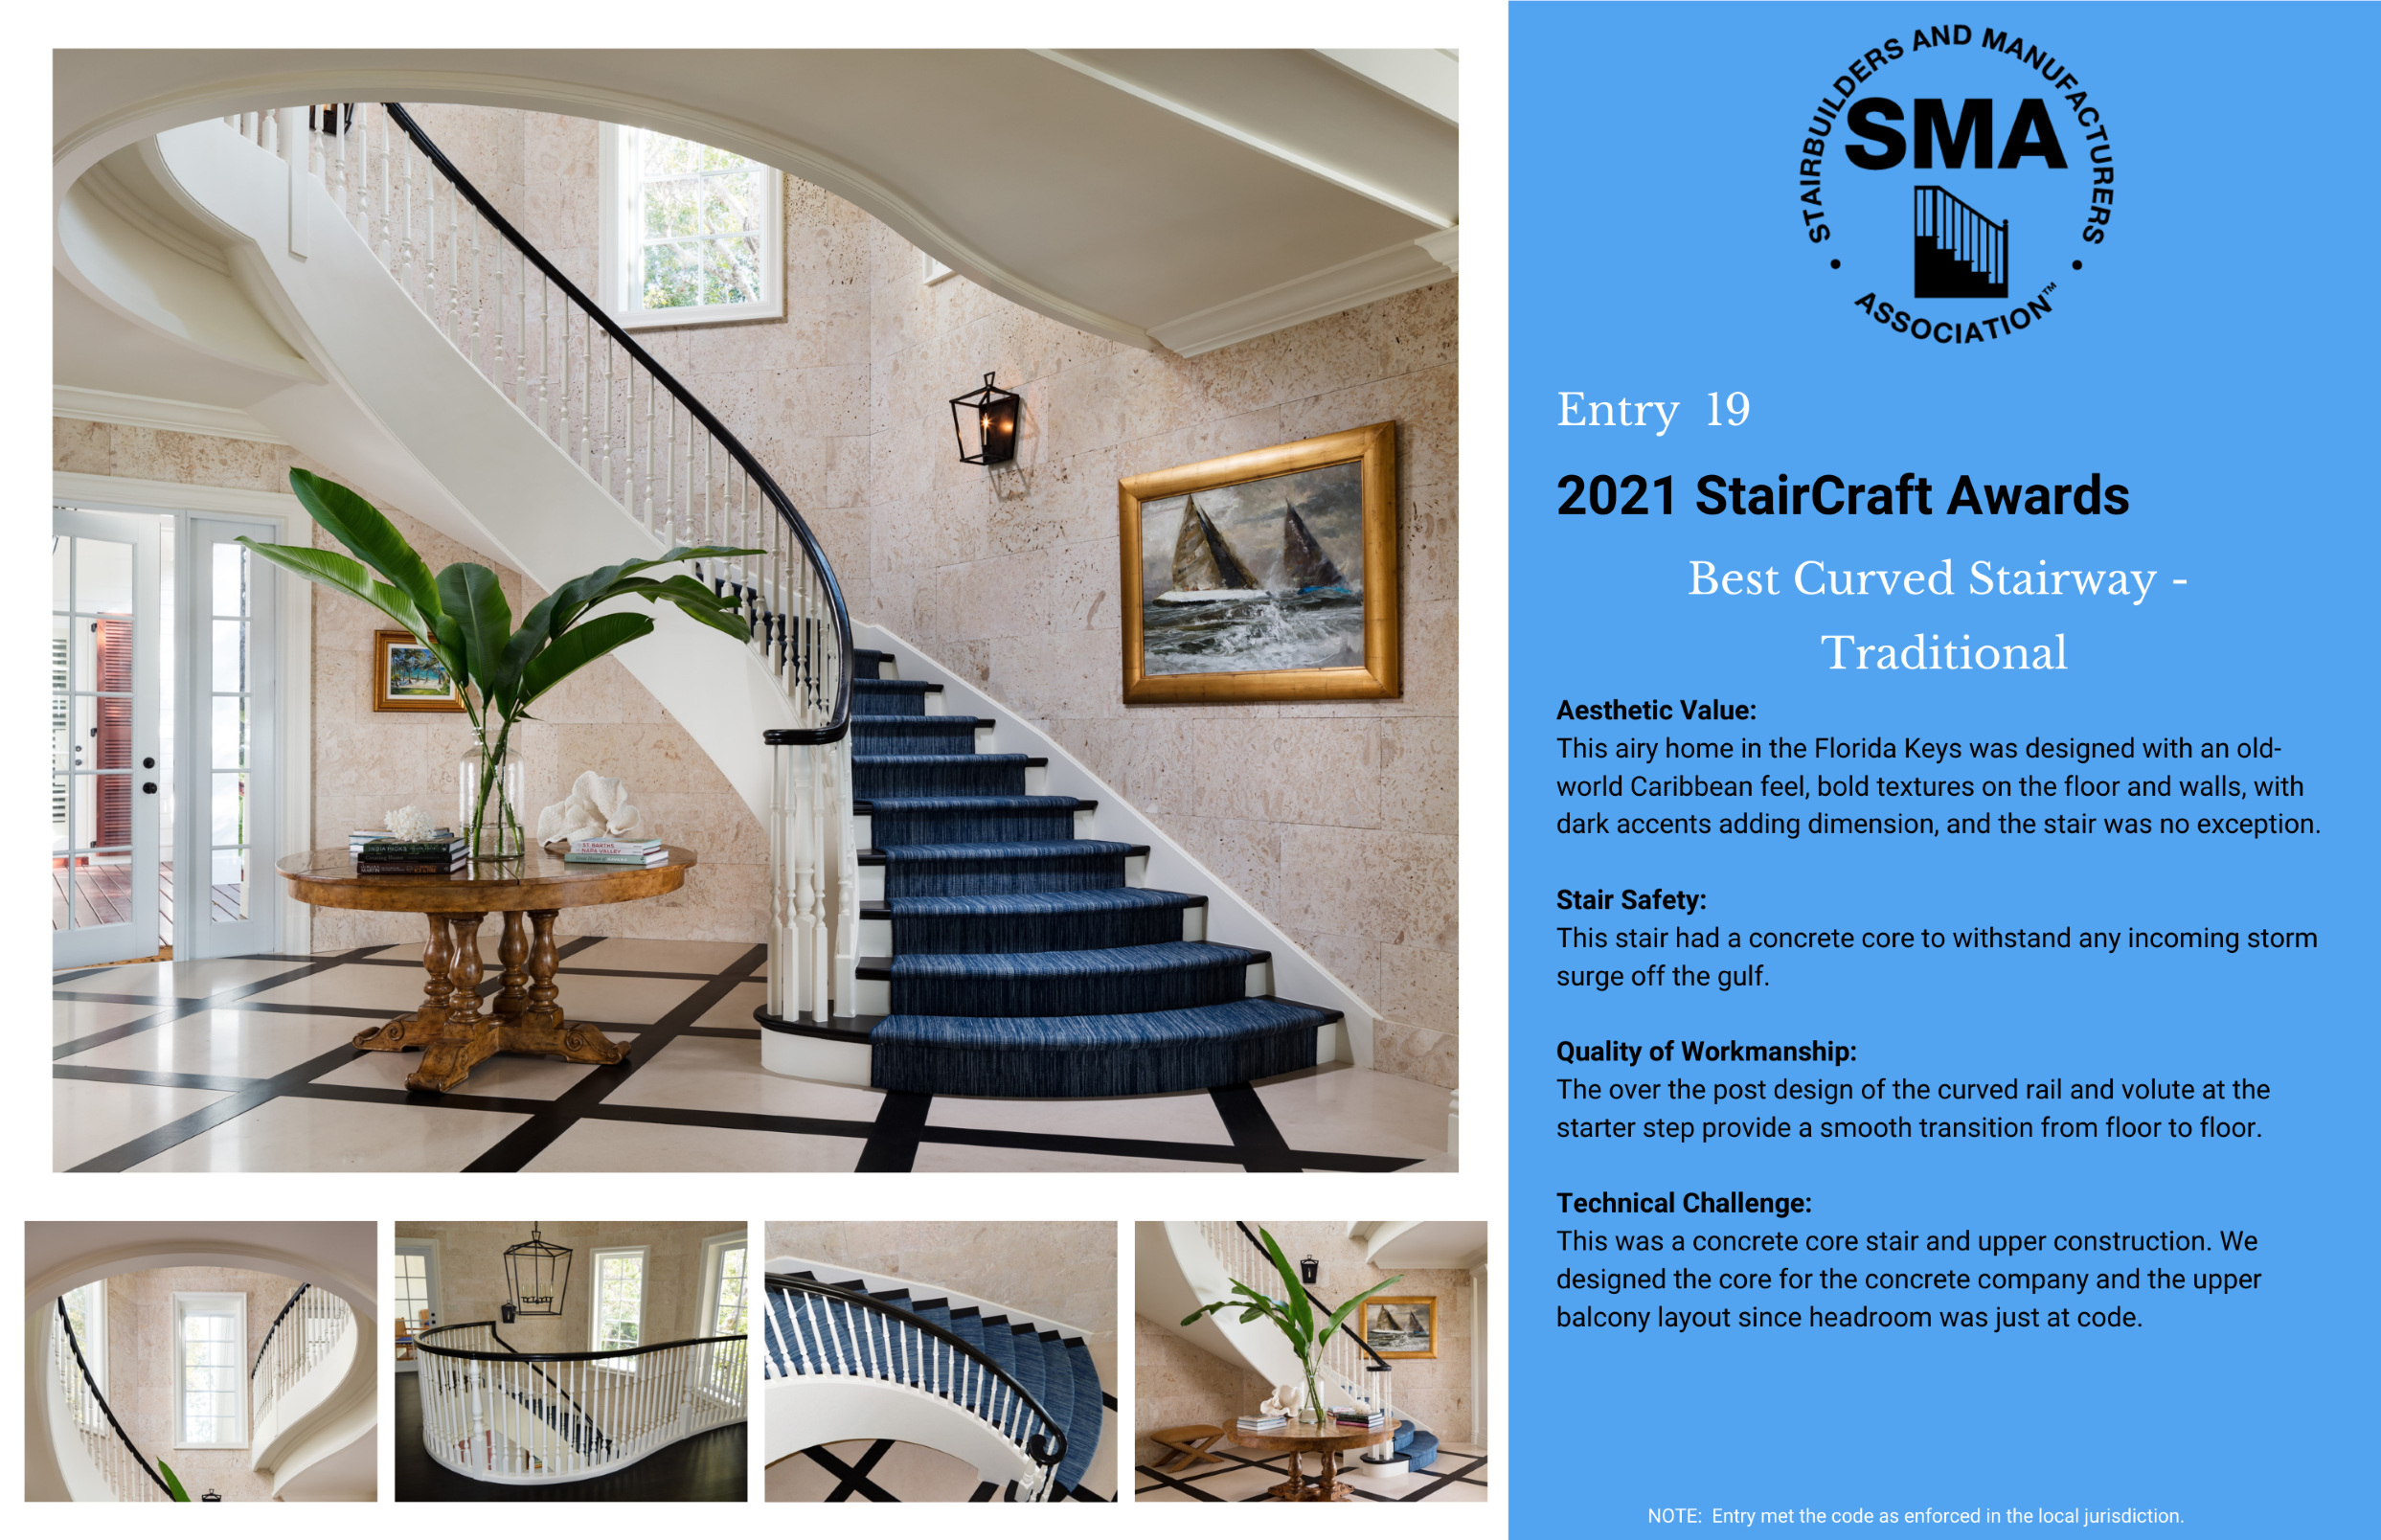 2021 StairCraft Awards Entry 19